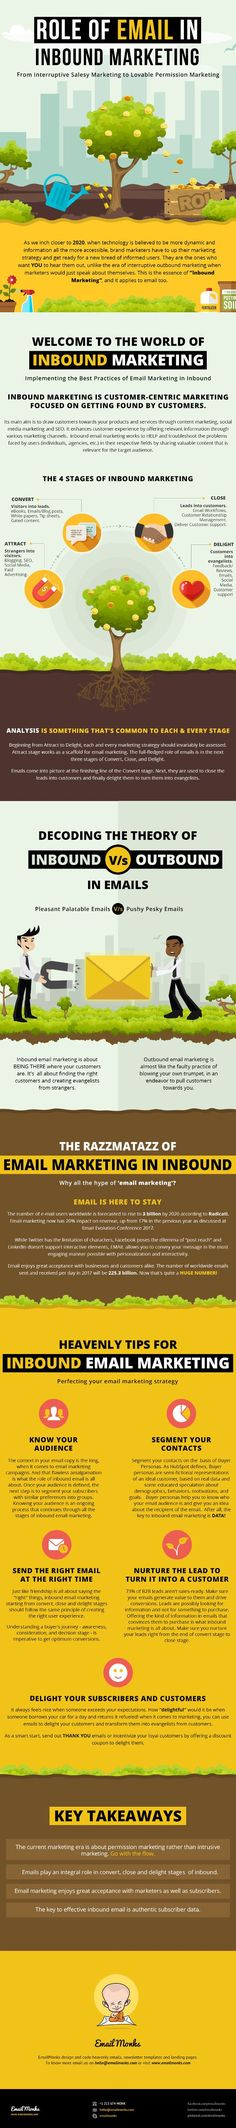 Email for Inbound Marketing: Best-Practices and Tips | Marketing Infographic